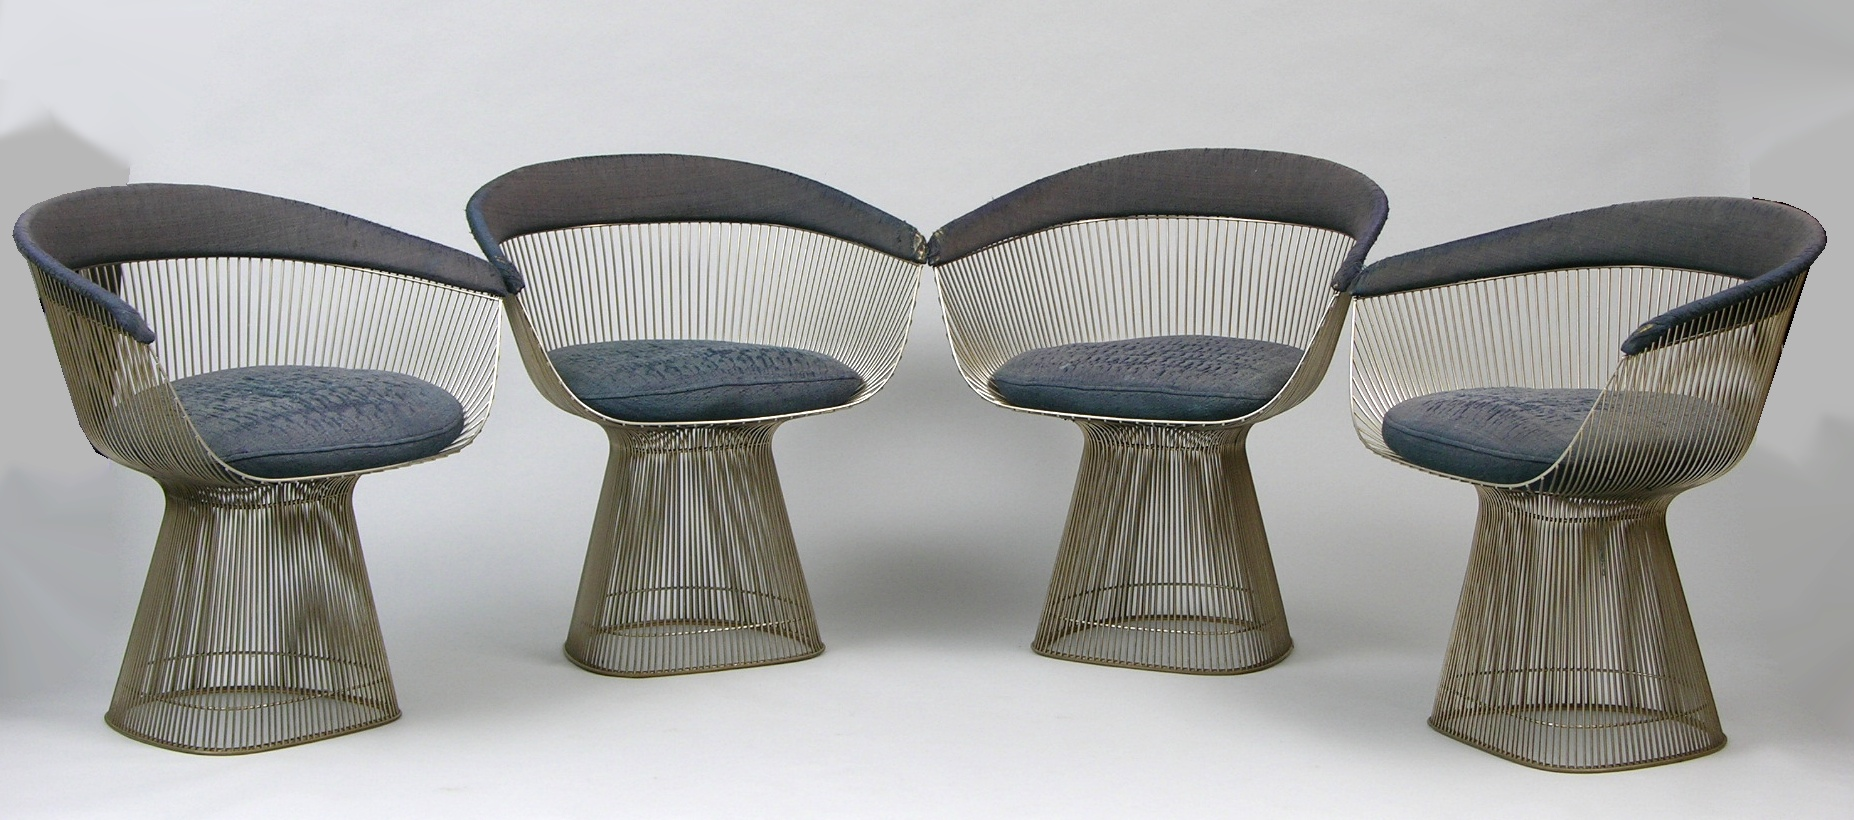 Four Warren Platner Steel Wire Chairs for Knoll International, ca. 1966